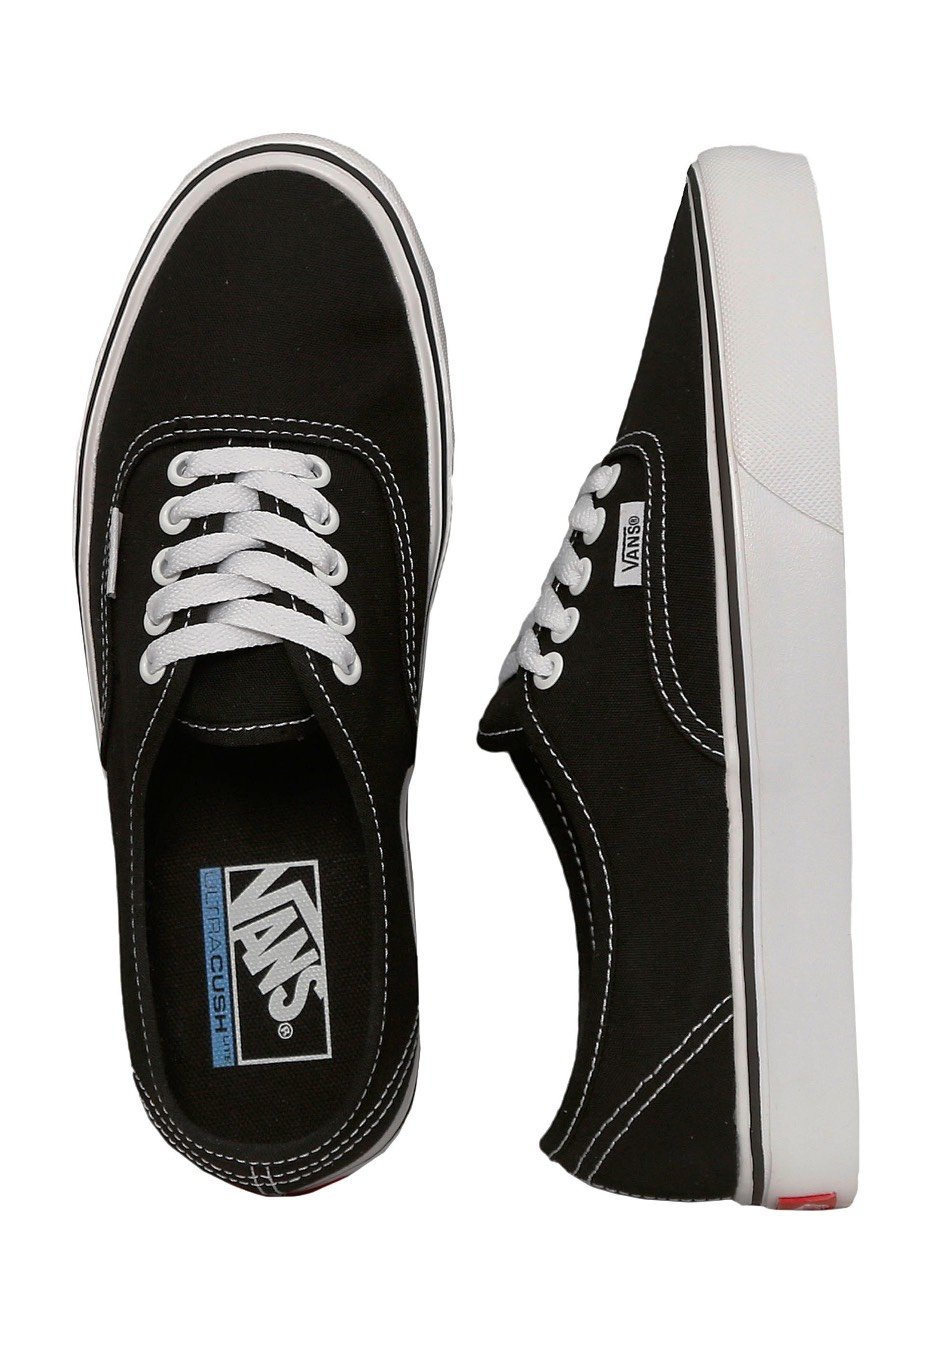 8efb021d79 Vans - Authentic Lite Canvas Black White - Shoes - Impericon.com UK